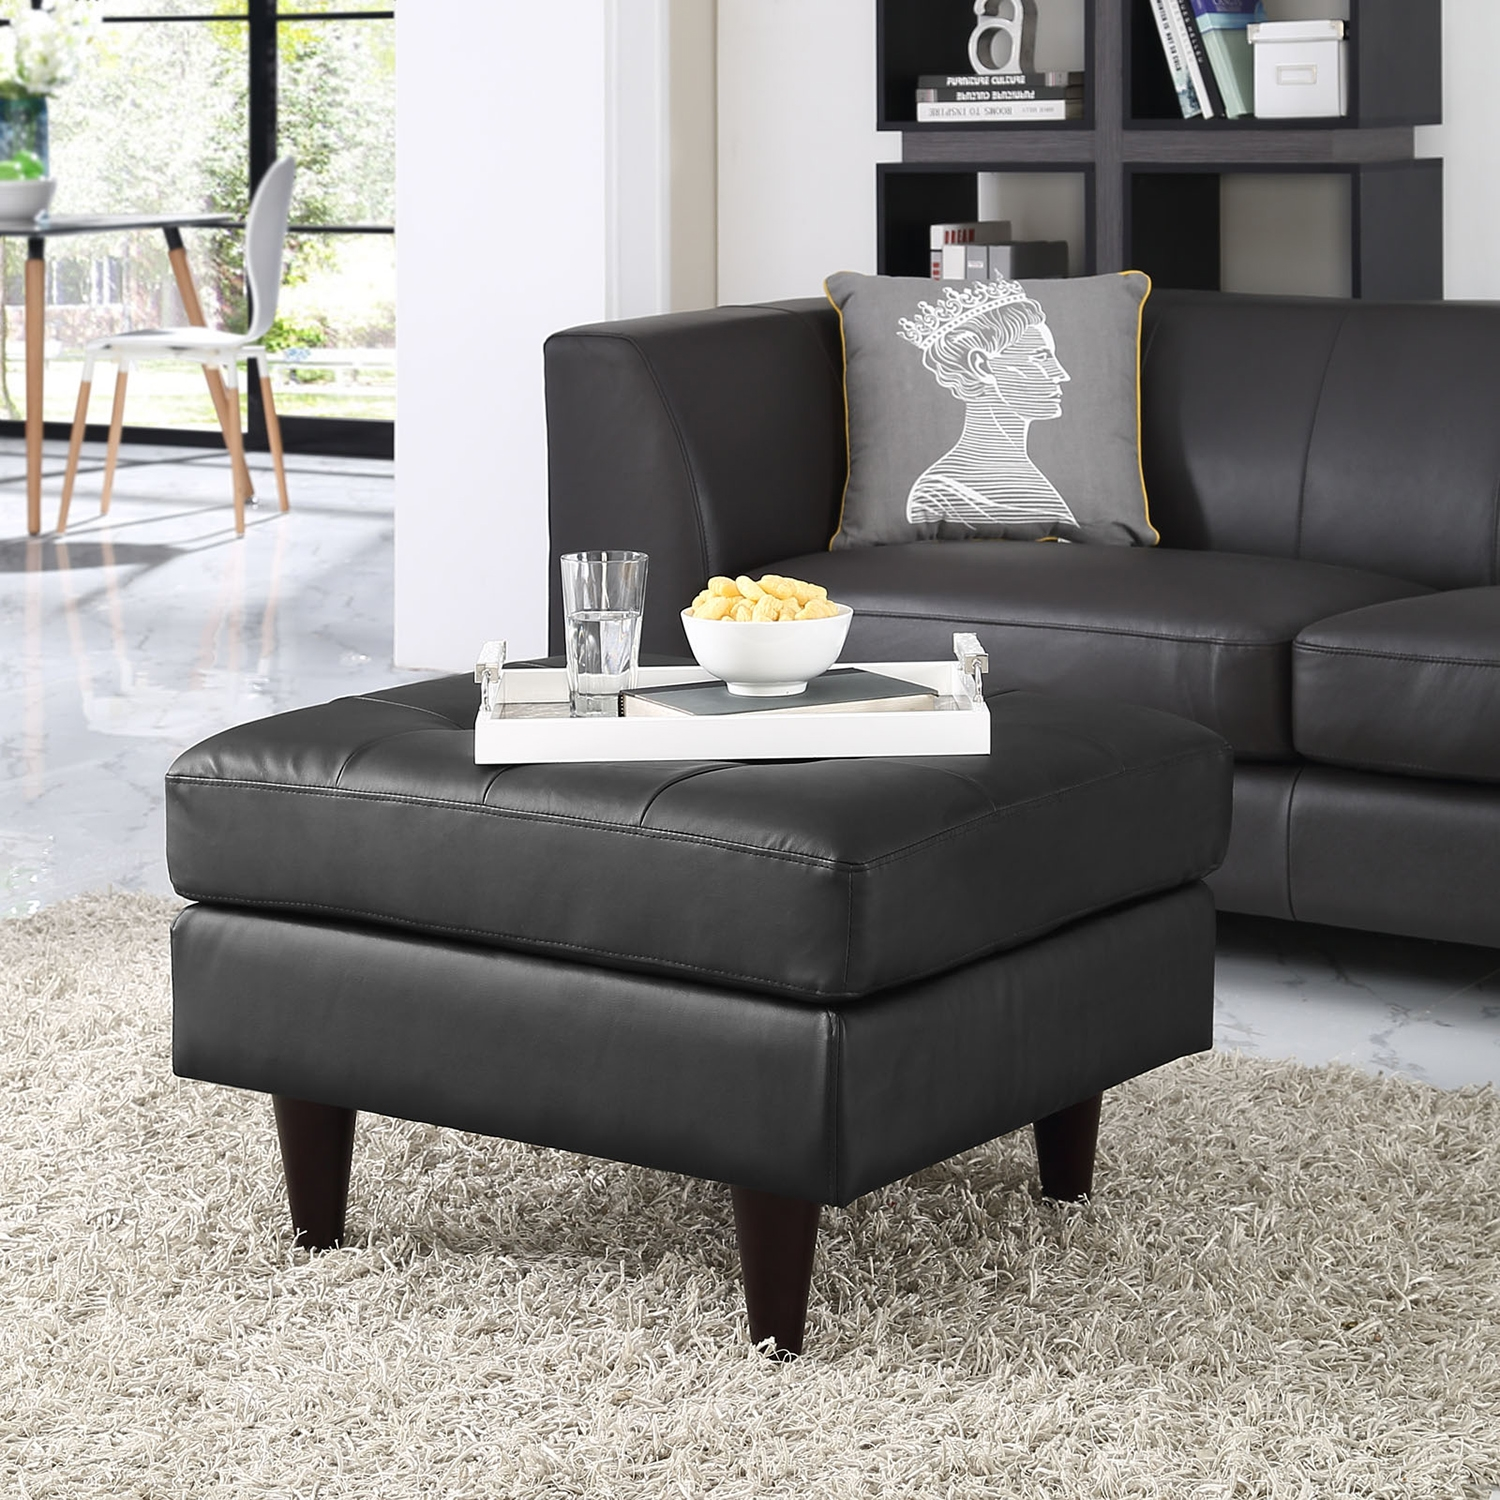 Empress Leather Ottoman - Tufted Bonded, Black - EEI-1668-BLK